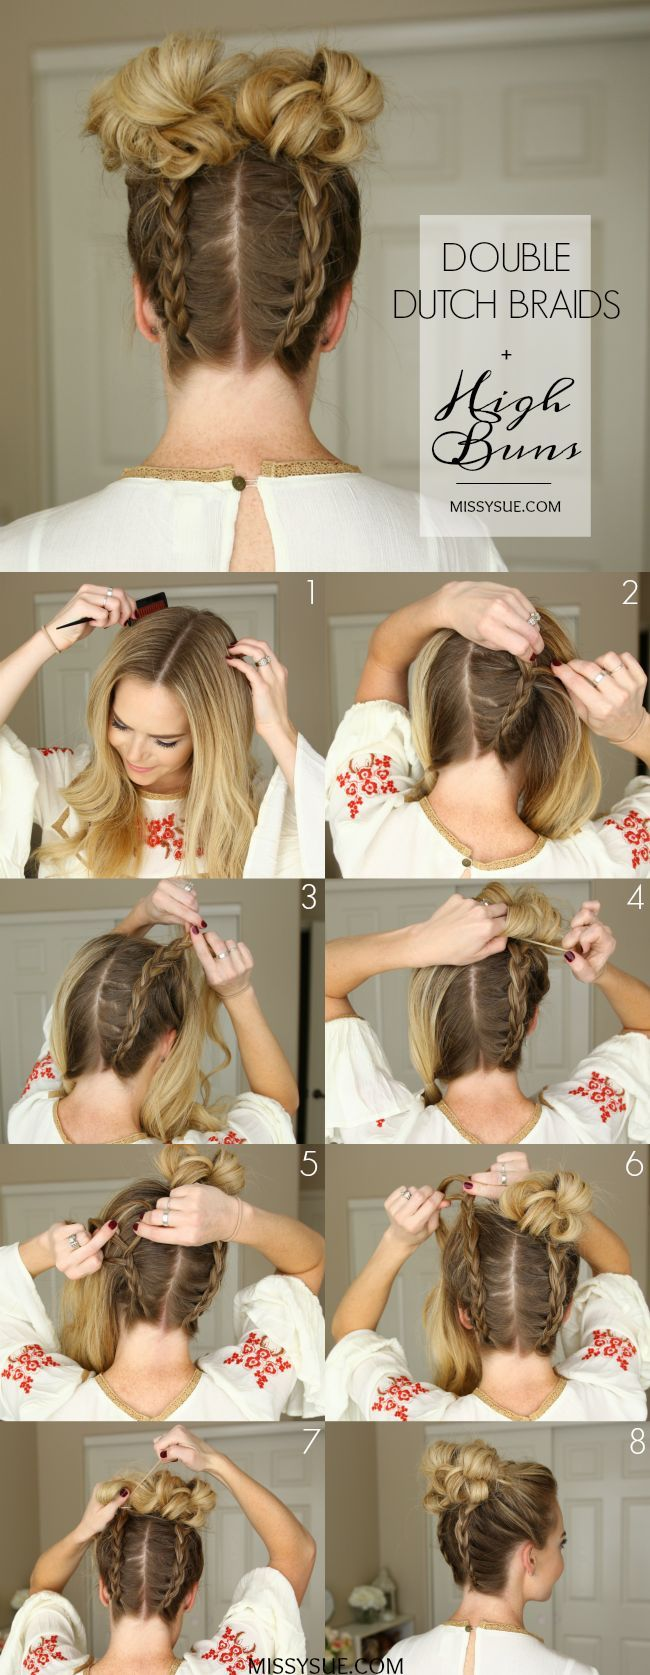 best lb images on pinterest beautiful hairstyles and braids